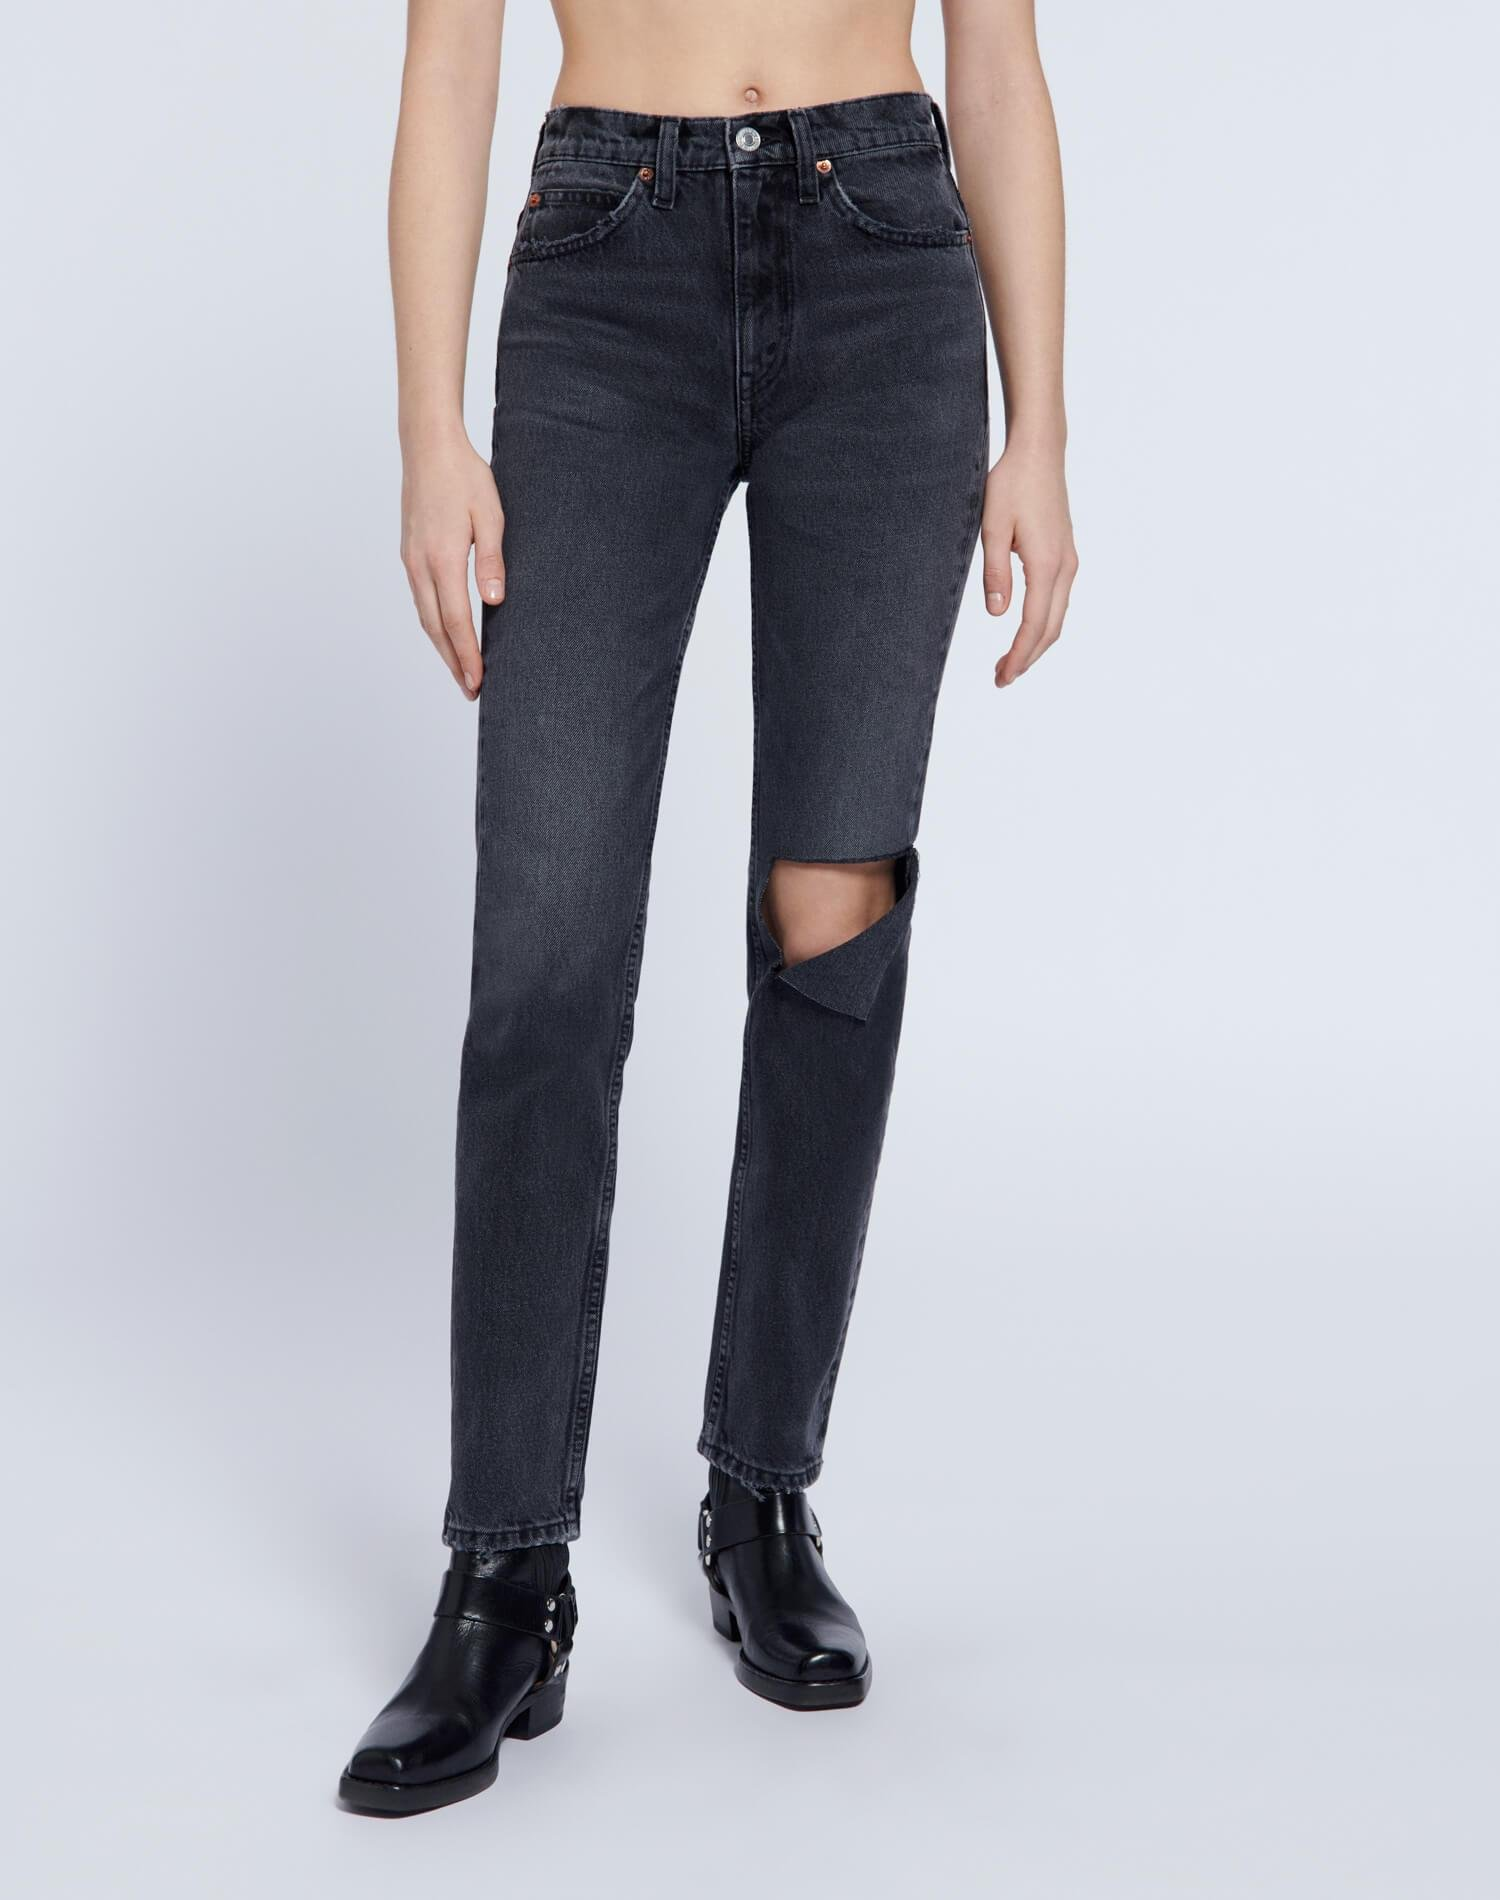 70s Straight - Worn Black with Rips